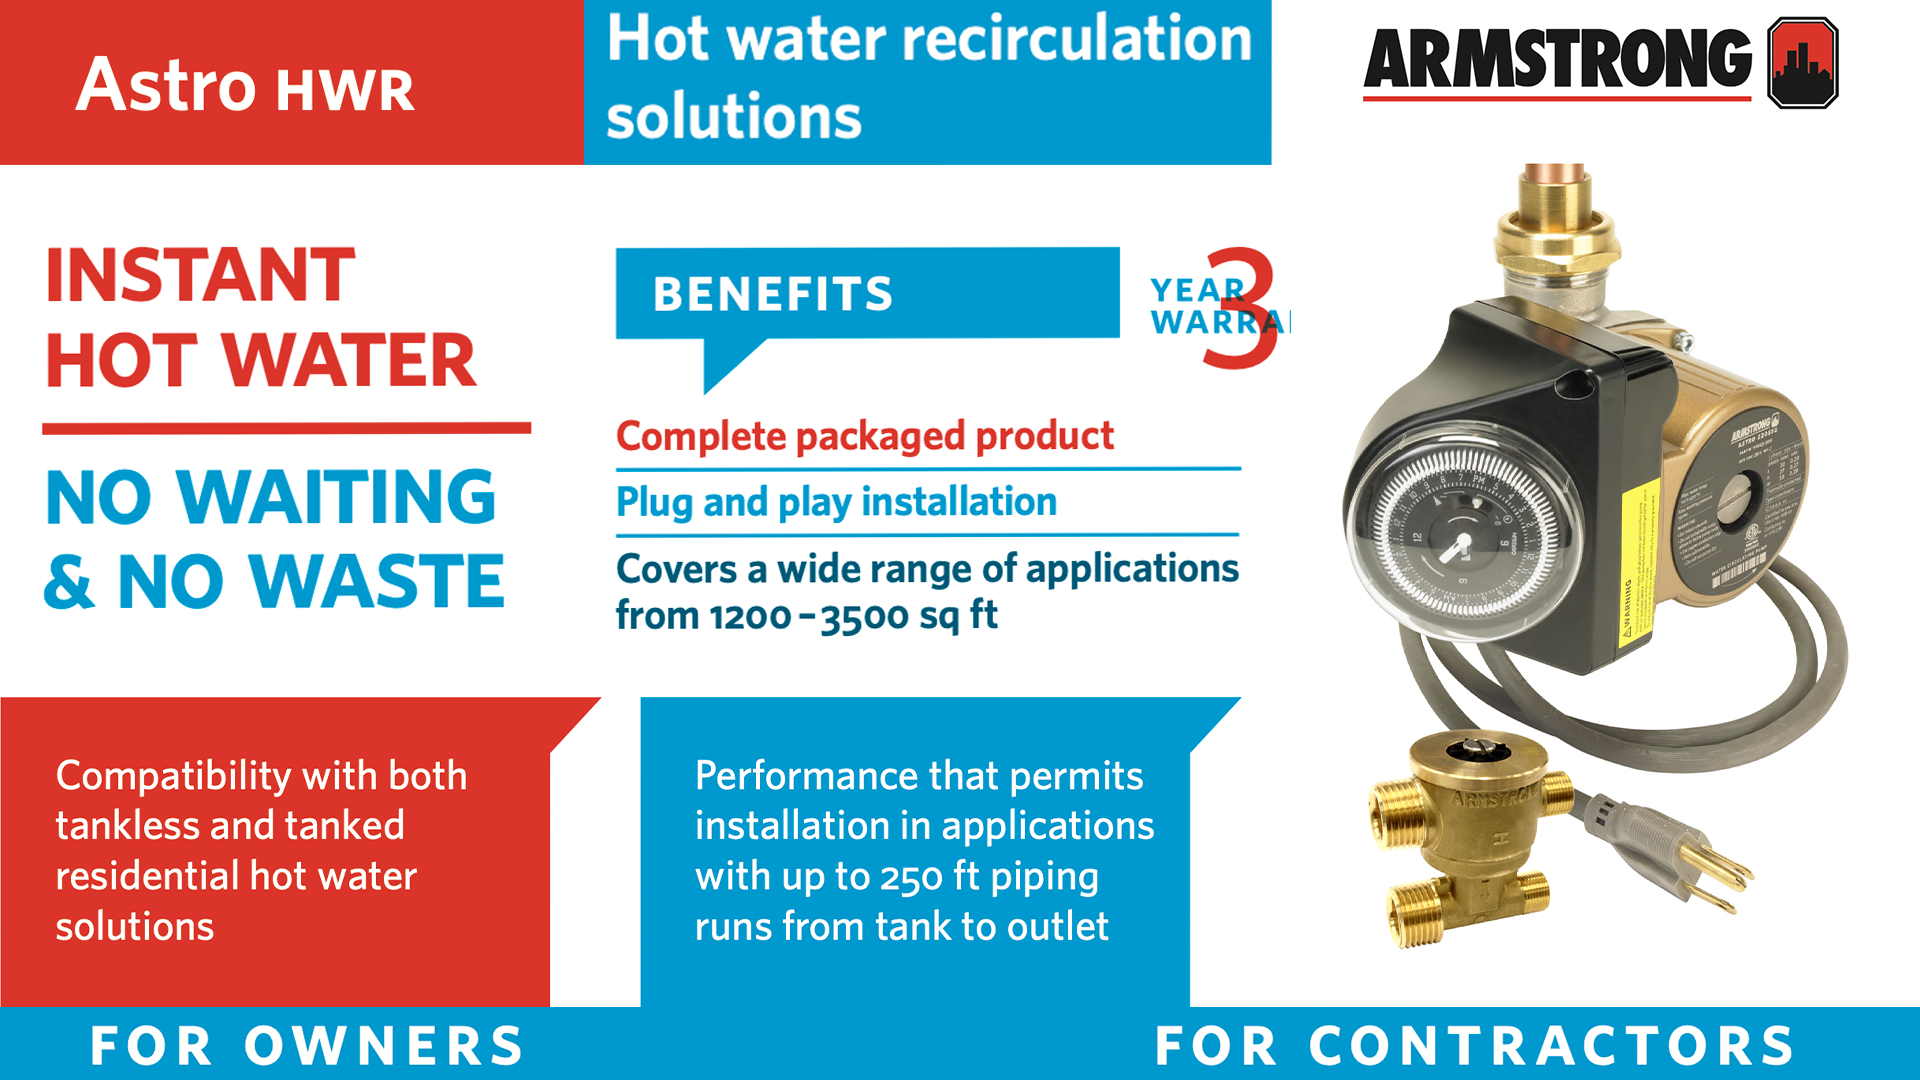 Armstrong Astro Instant Hot Water Circulating Pump